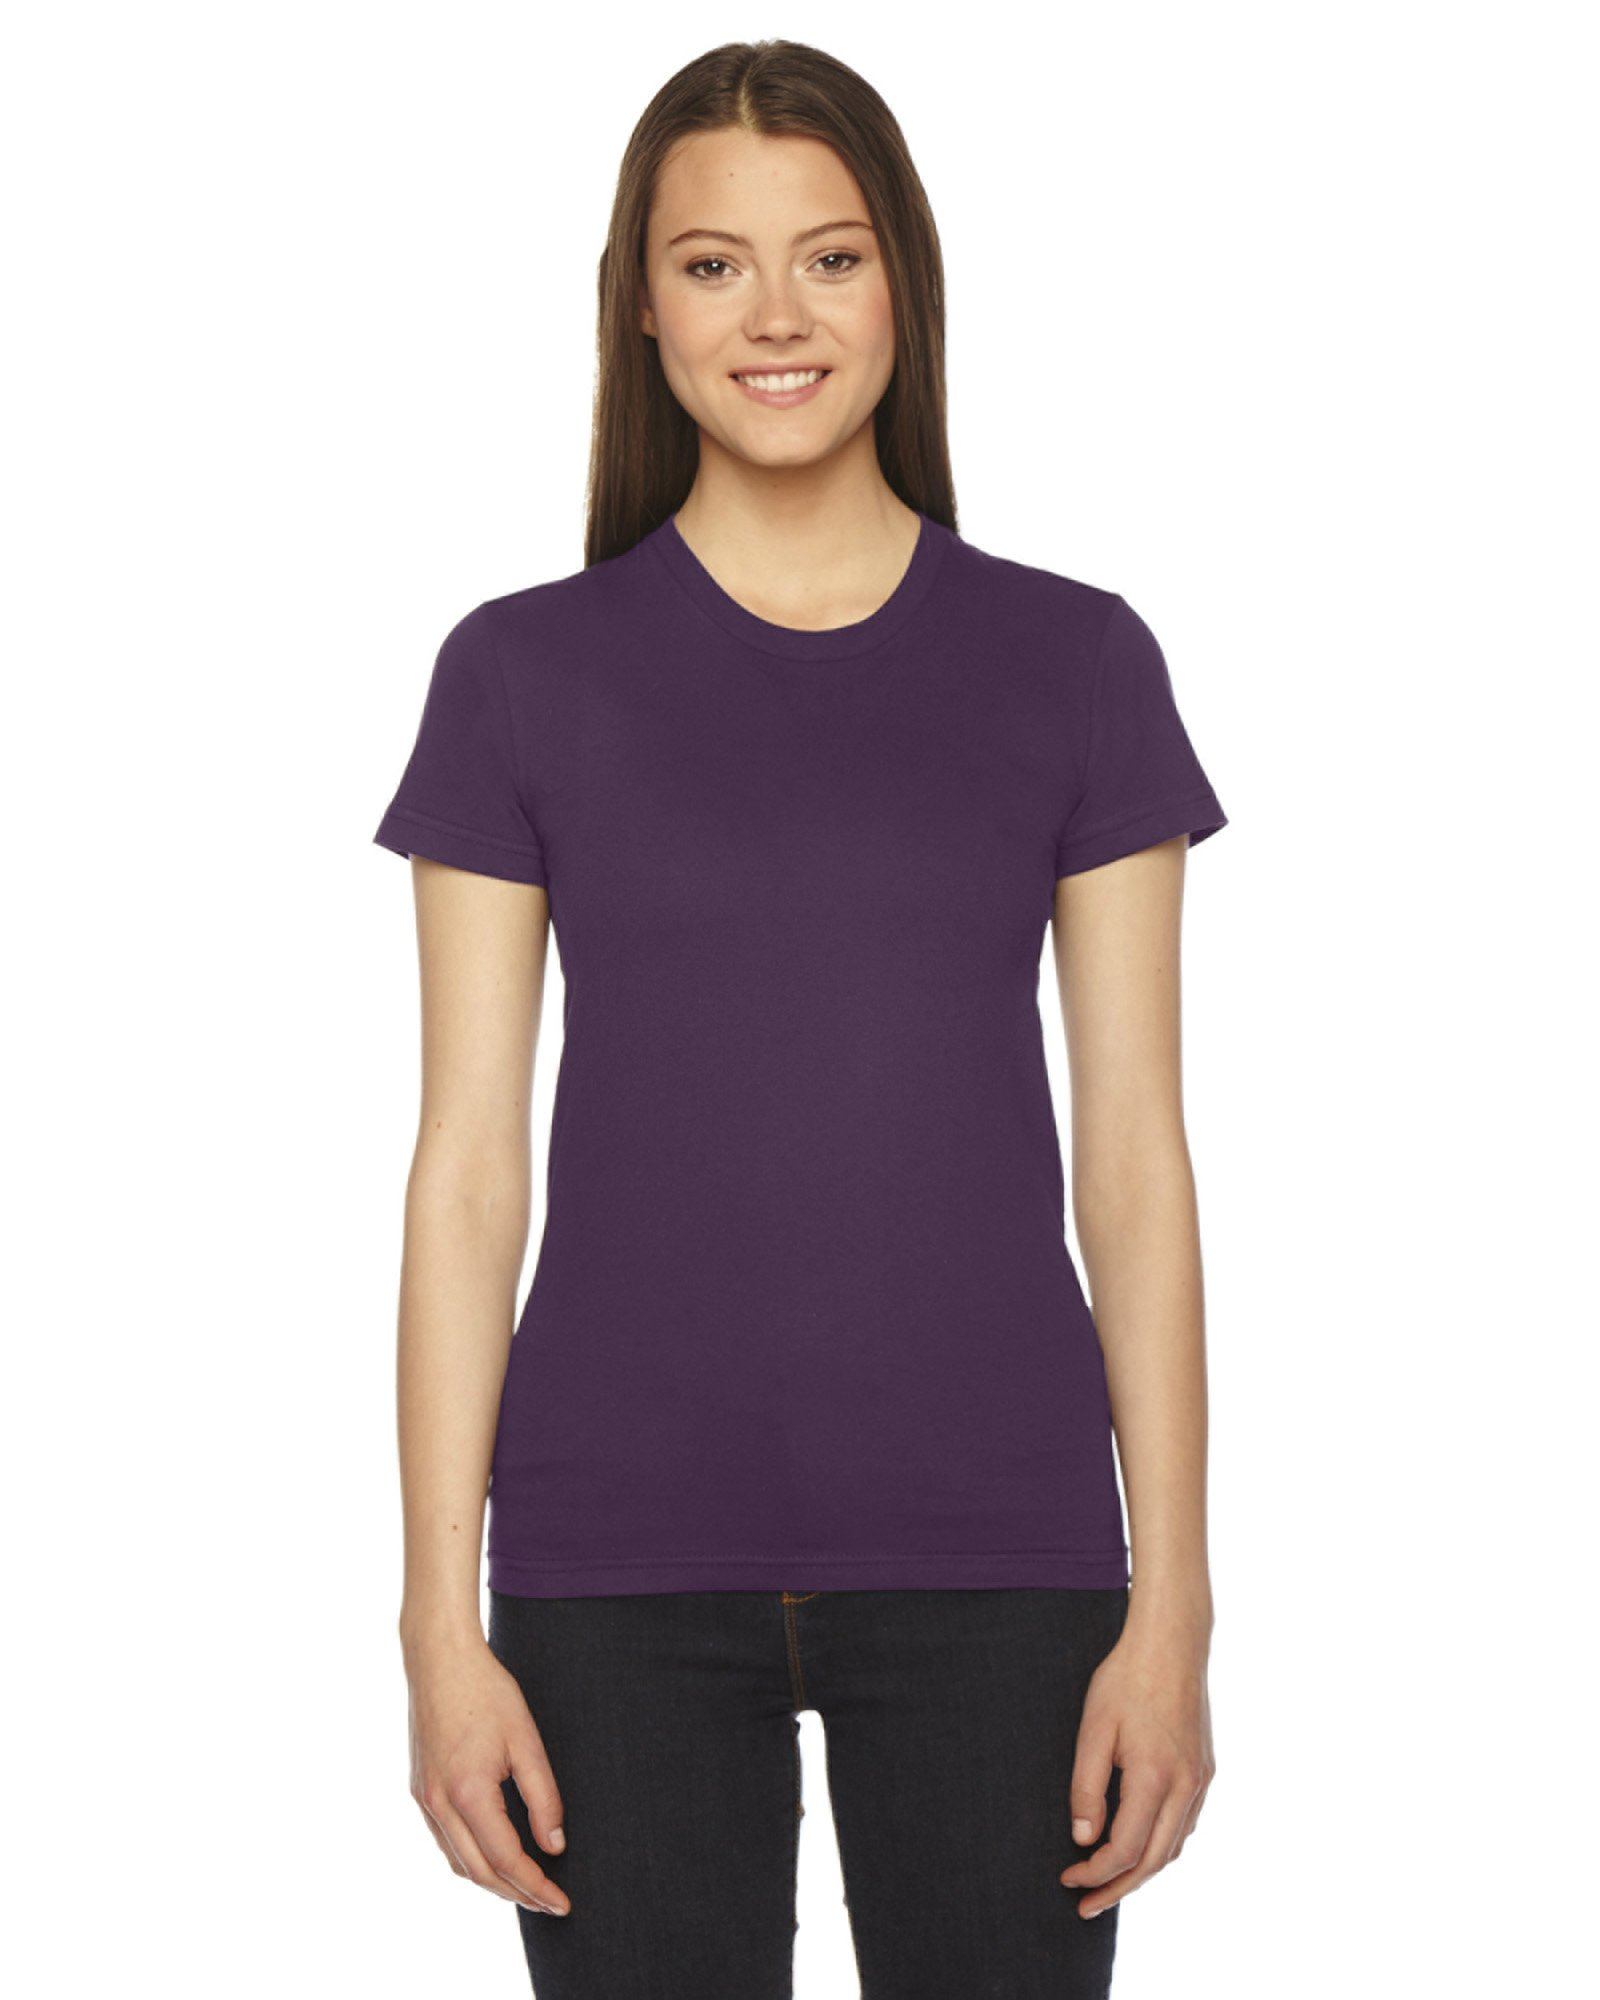 American Apparel Women's Fine Jersey Short Sleeve T-Shirt - Eggplant - Large by American Apparel (Image #1)